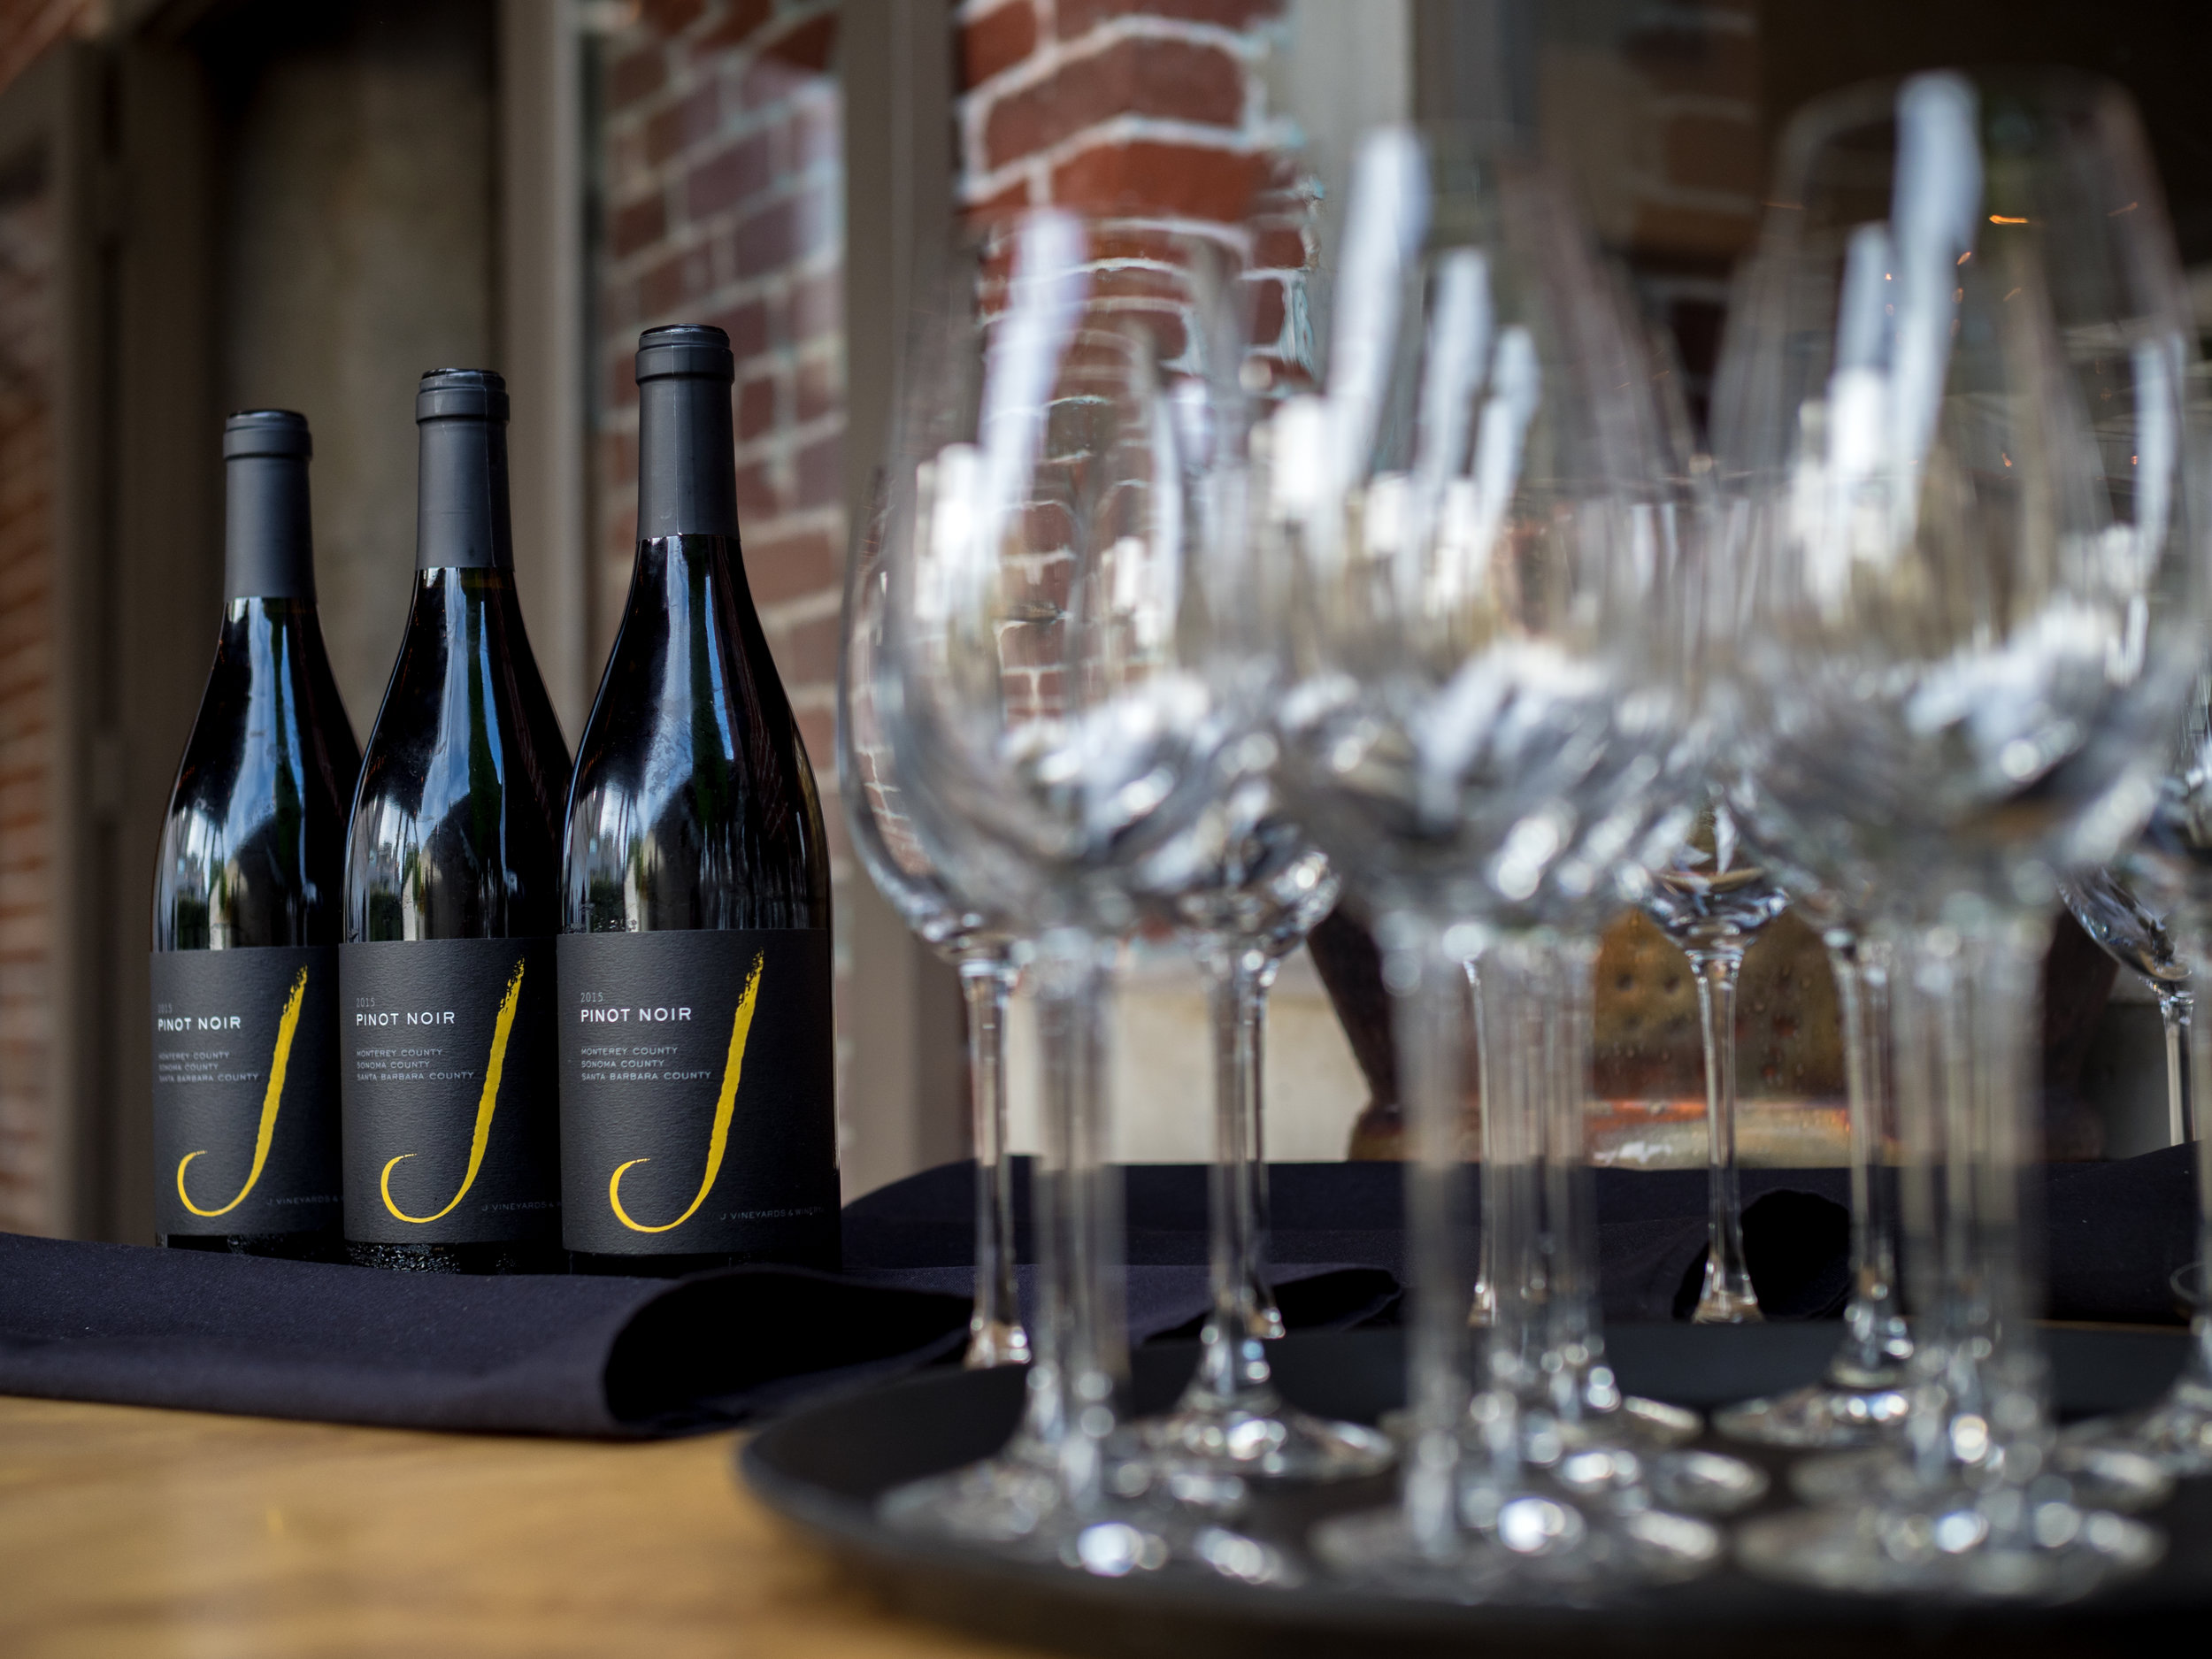 Musings by the Glass - Tips for Pairing Wine and Seafood - J Vineyard Black Label Pinot Noir